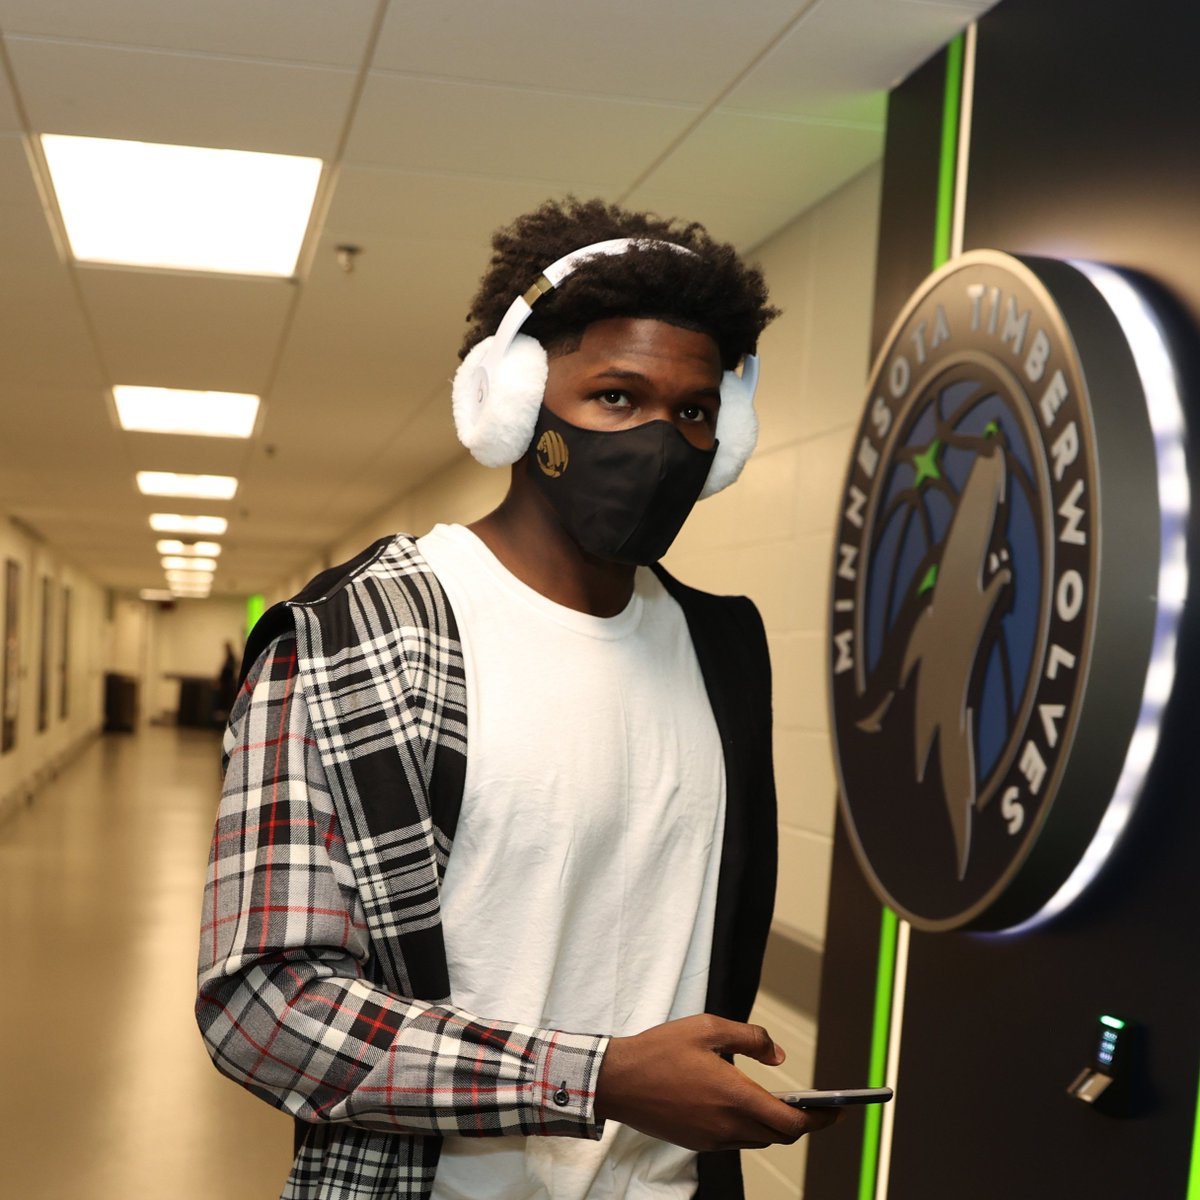 No. 1 pick Anthony Edwards (@theantedwards_) arrives for his NBA debut rocking his @beatsbydre Studio3 Wireless Earmuffs!